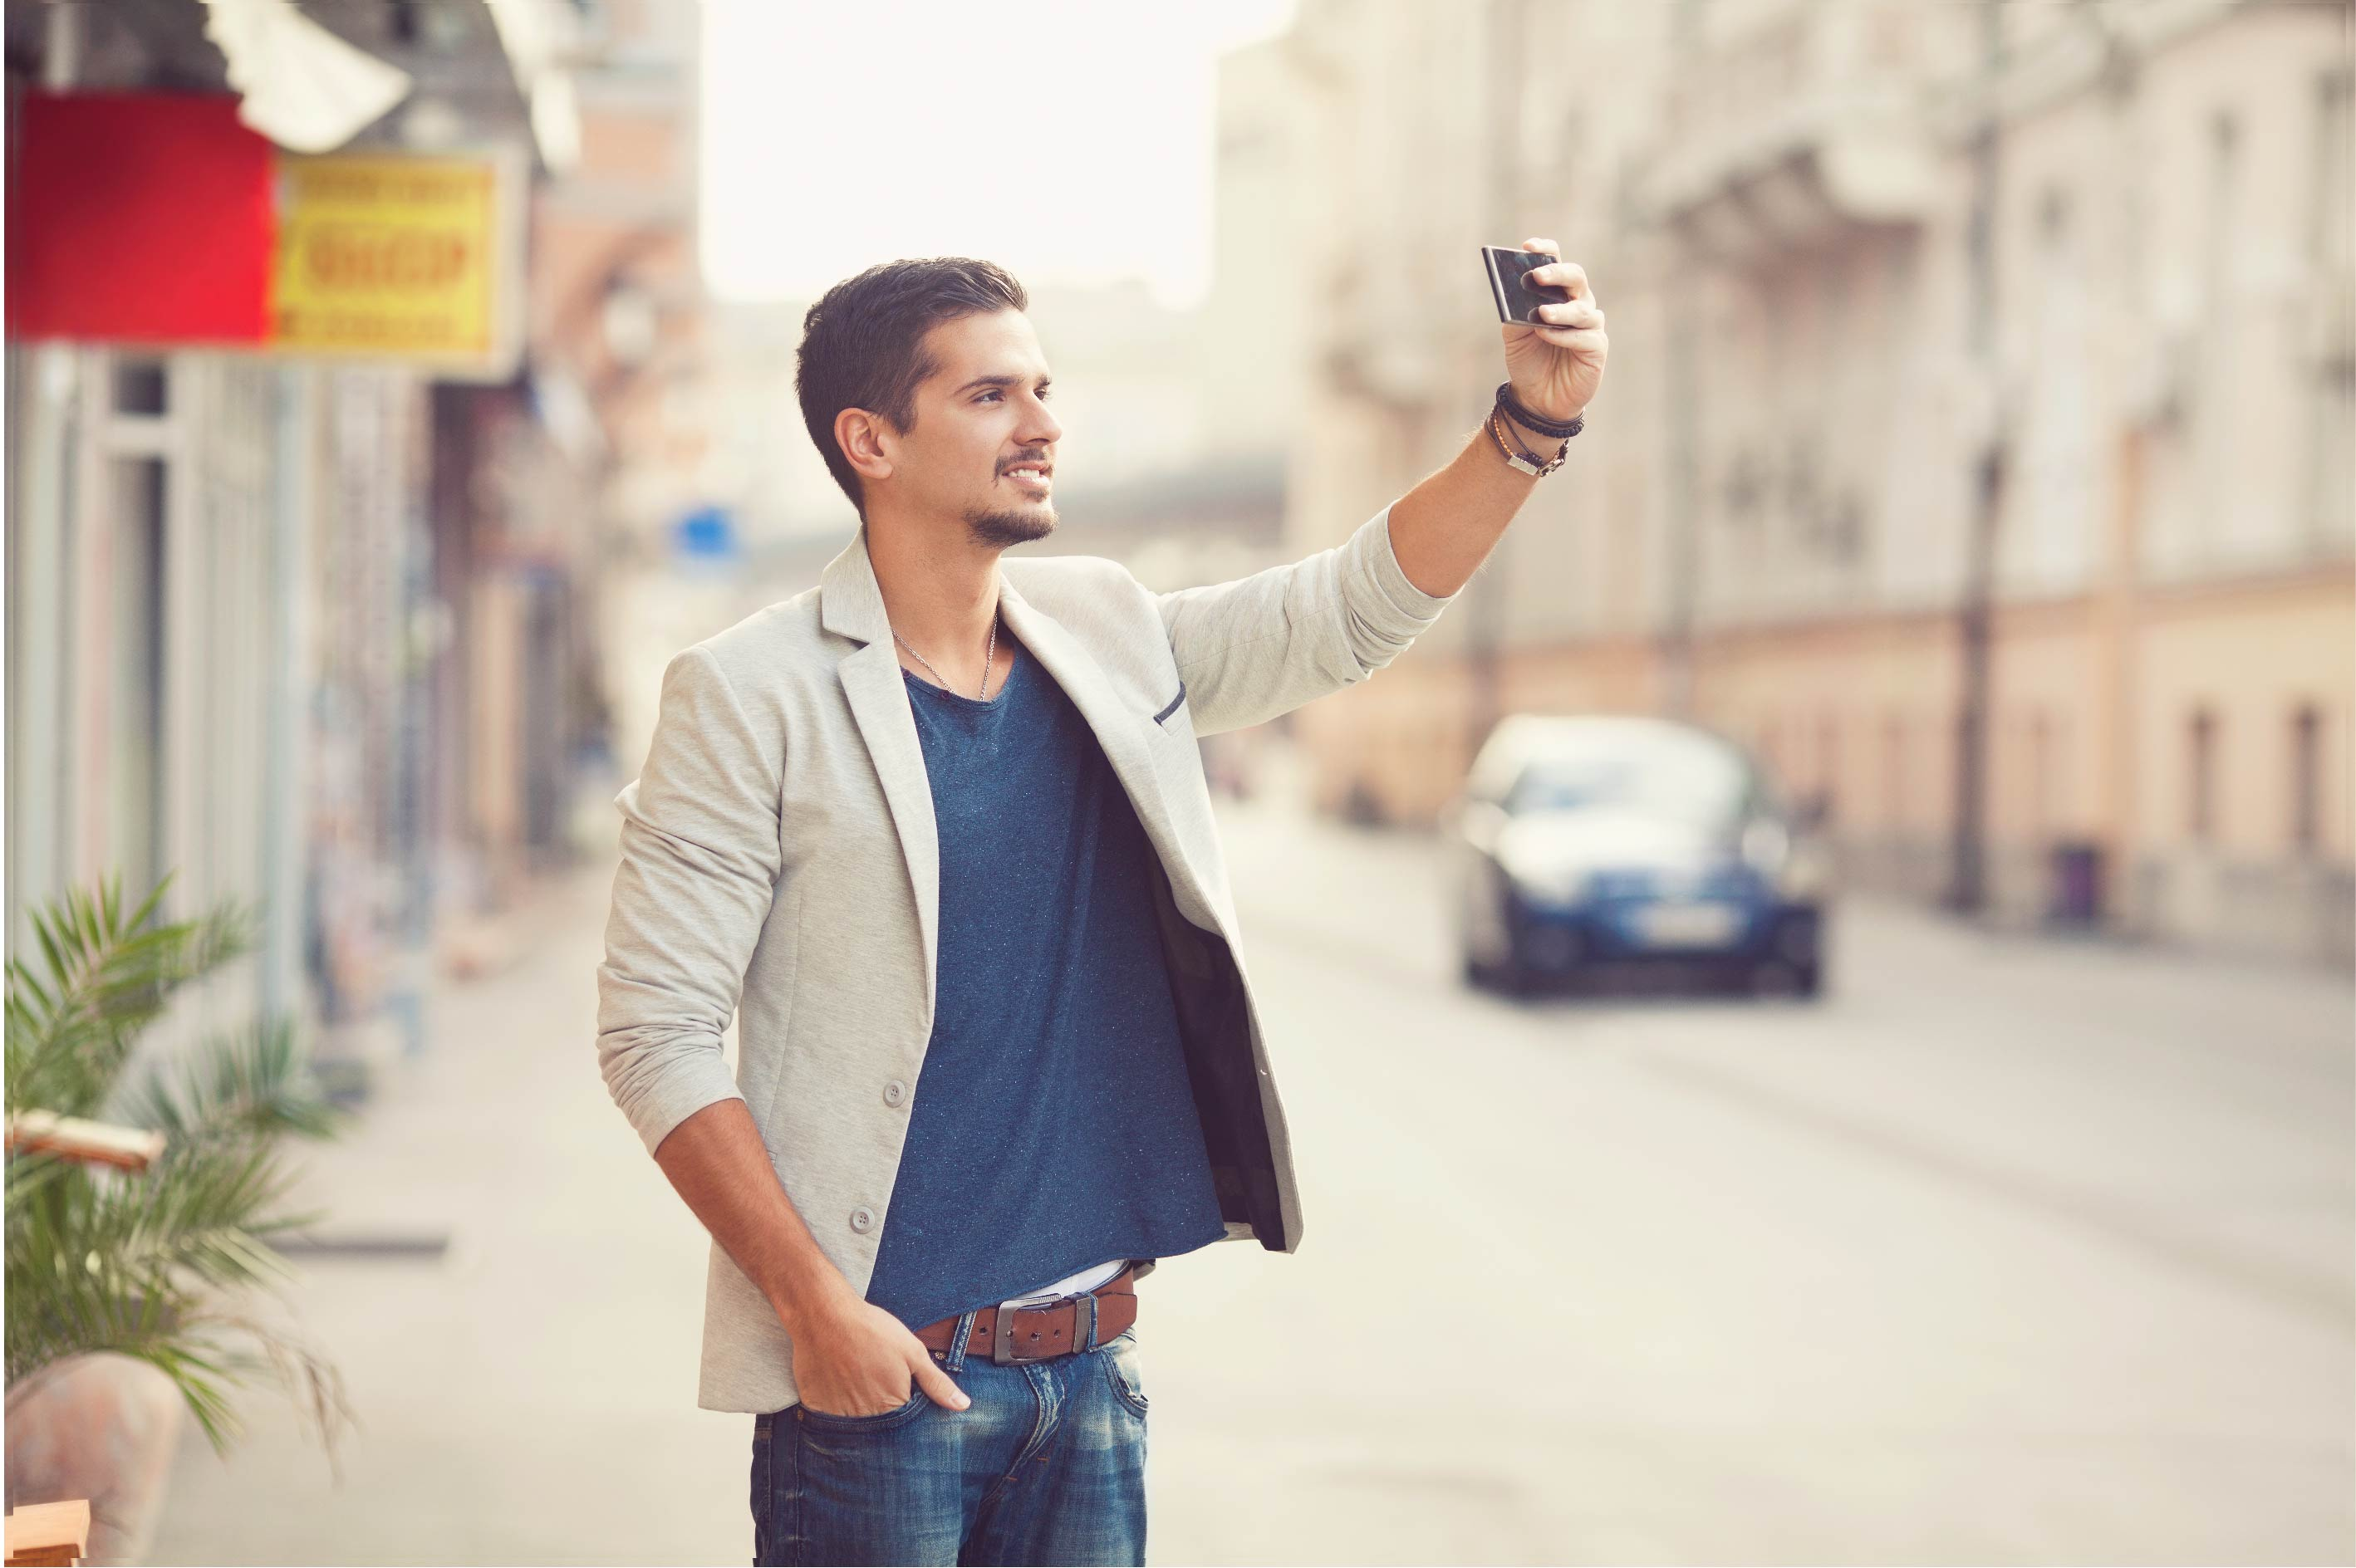 A professional-looking man scouting a location while taking a picture